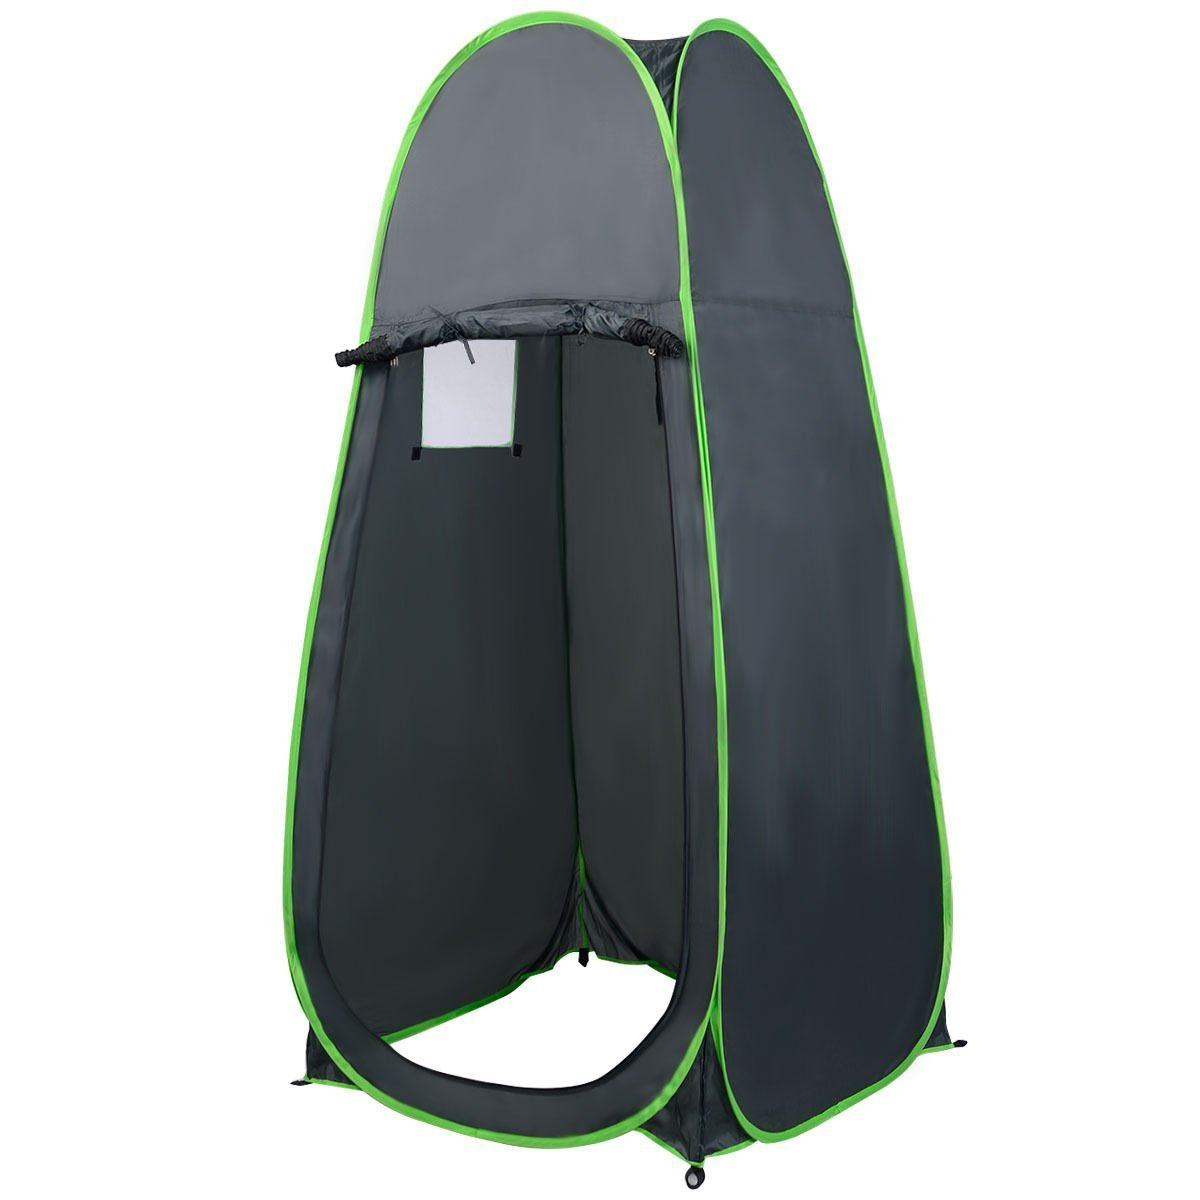 Generic A10-CODE-3082-CLASS-8-- Tent Room Toilet Changing angin Portable Pop UP ing Sho Camping Fishing Campi Bathing Shower le Pop --NV_1008003082-CXL-US10 by Generic (Image #4)